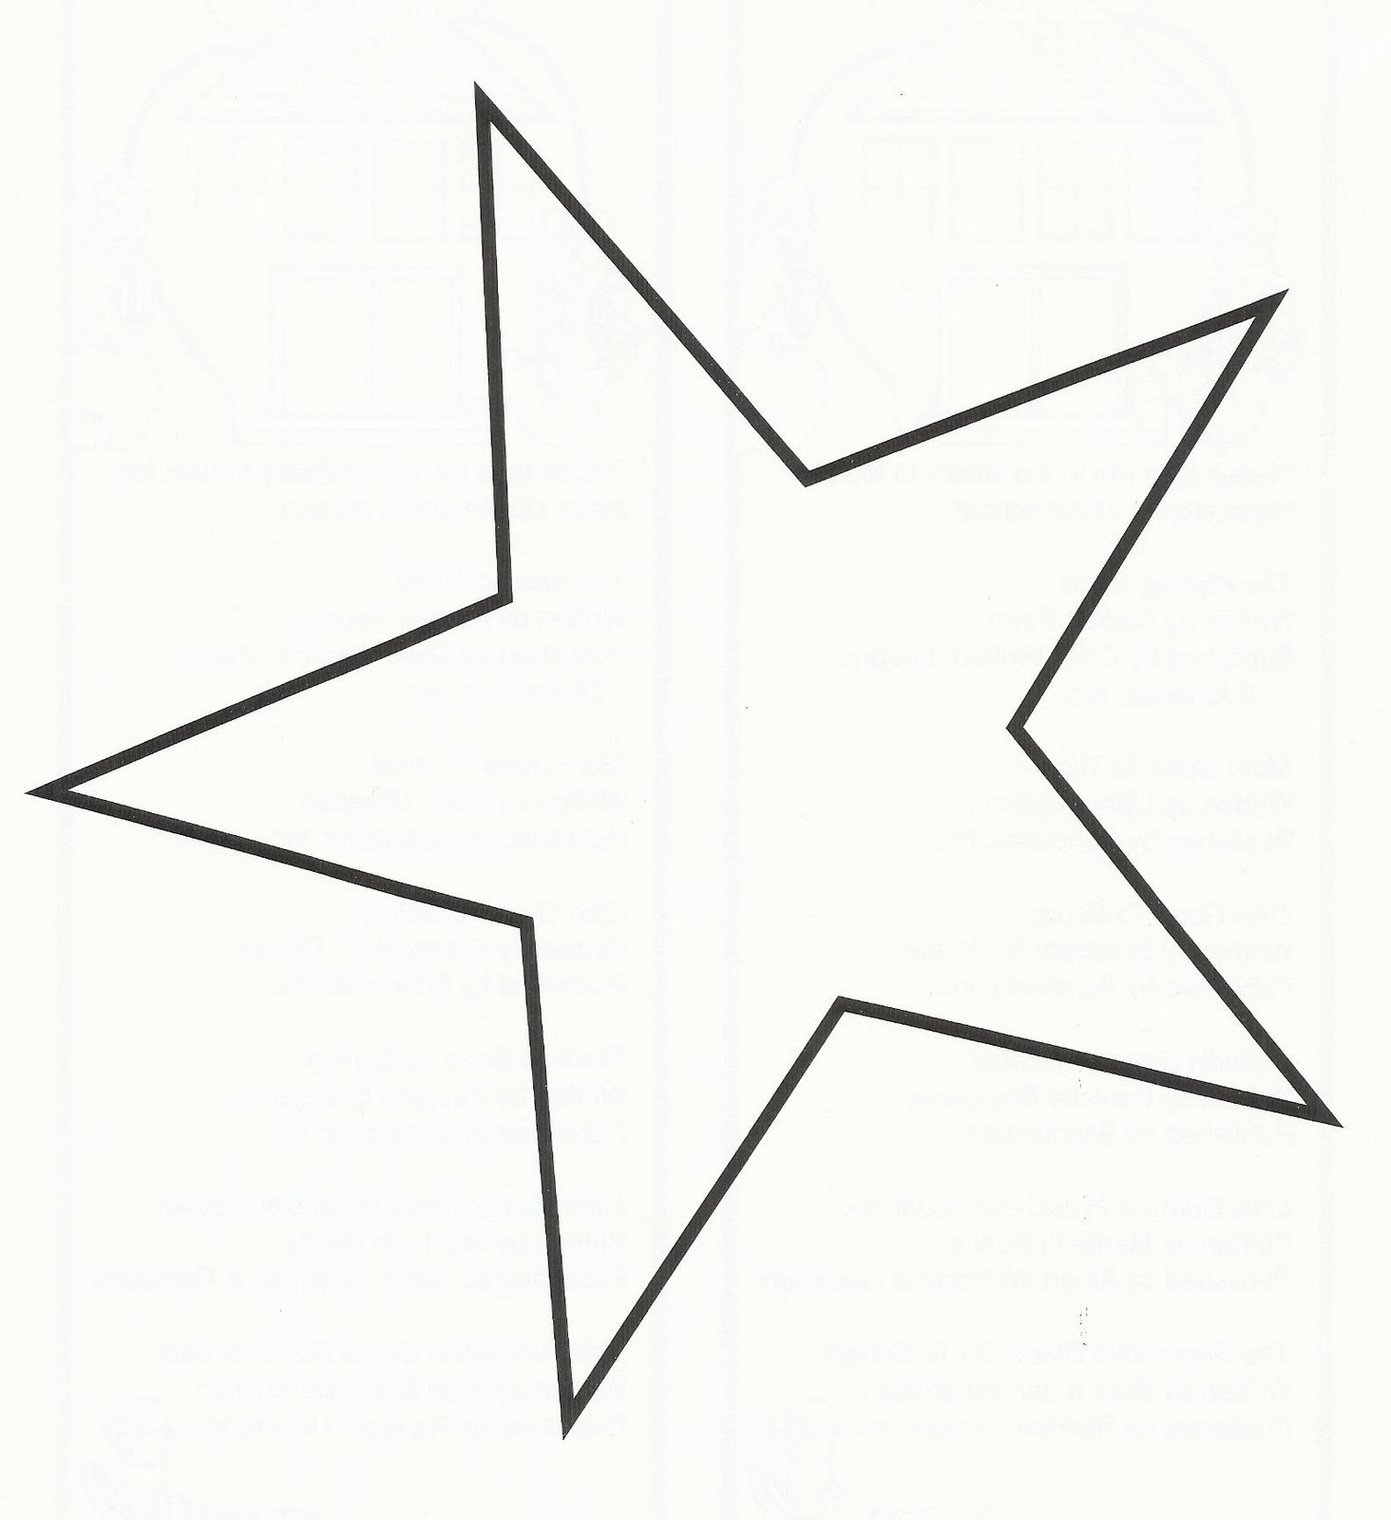 Star Outline Images Images For 5 Point S-Star outline images images for 5 point star outline clipart free to use clip art-16